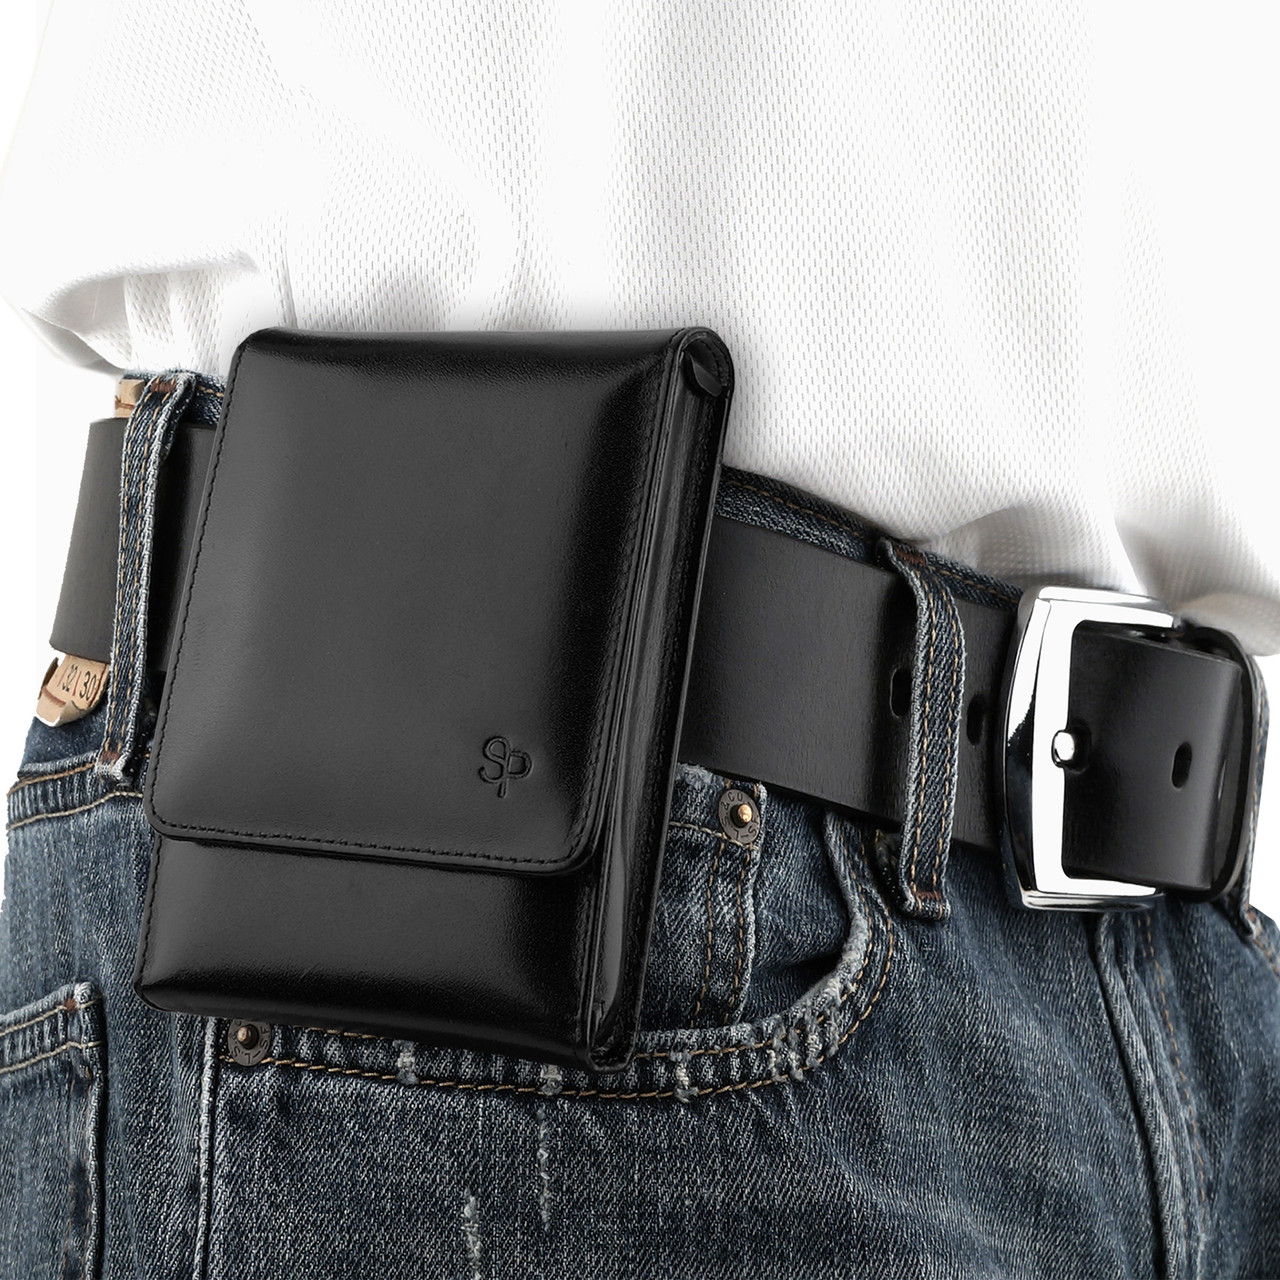 Kahr CW45 Black Leather Holster